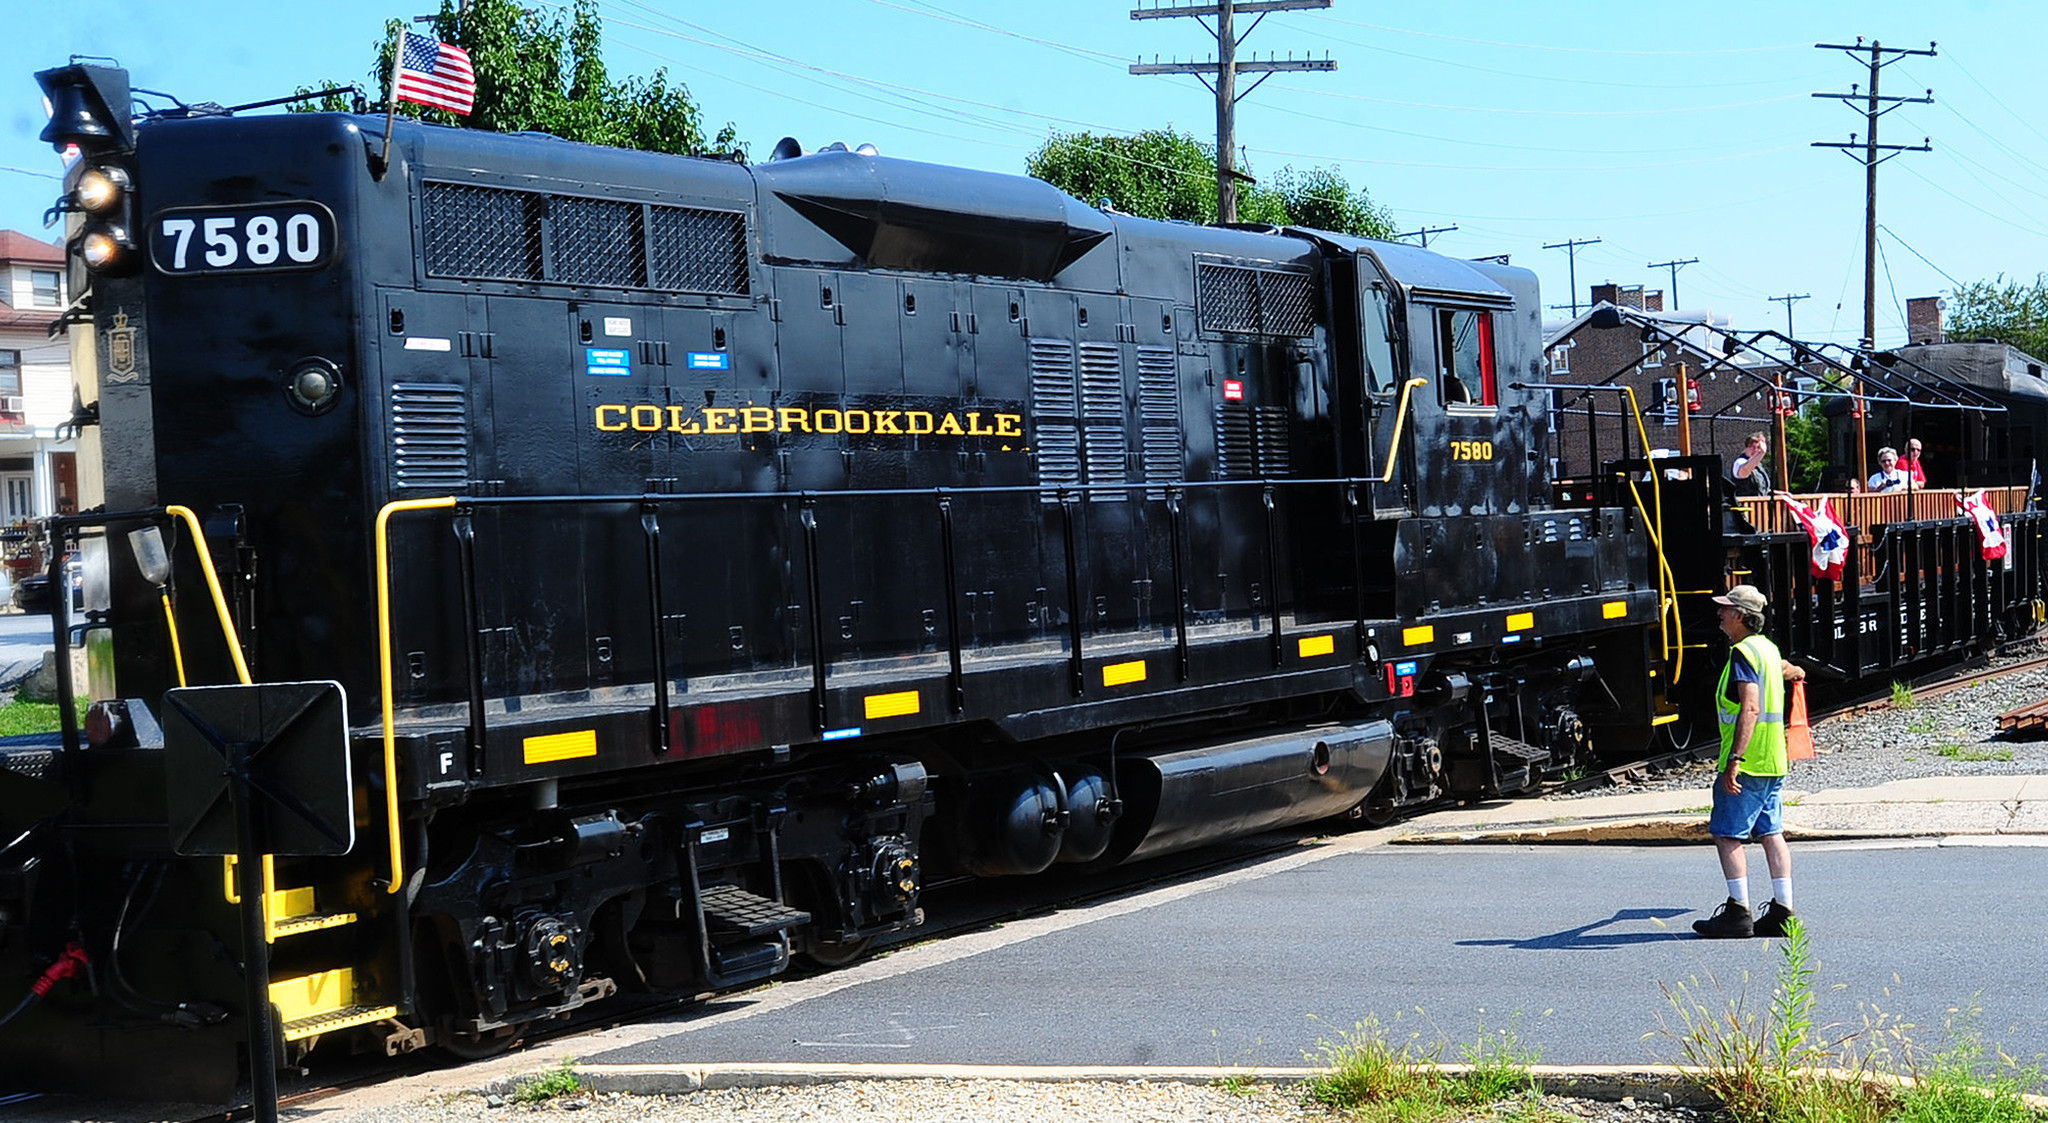 Historic trains in Lehigh Valley region - The Morning Call